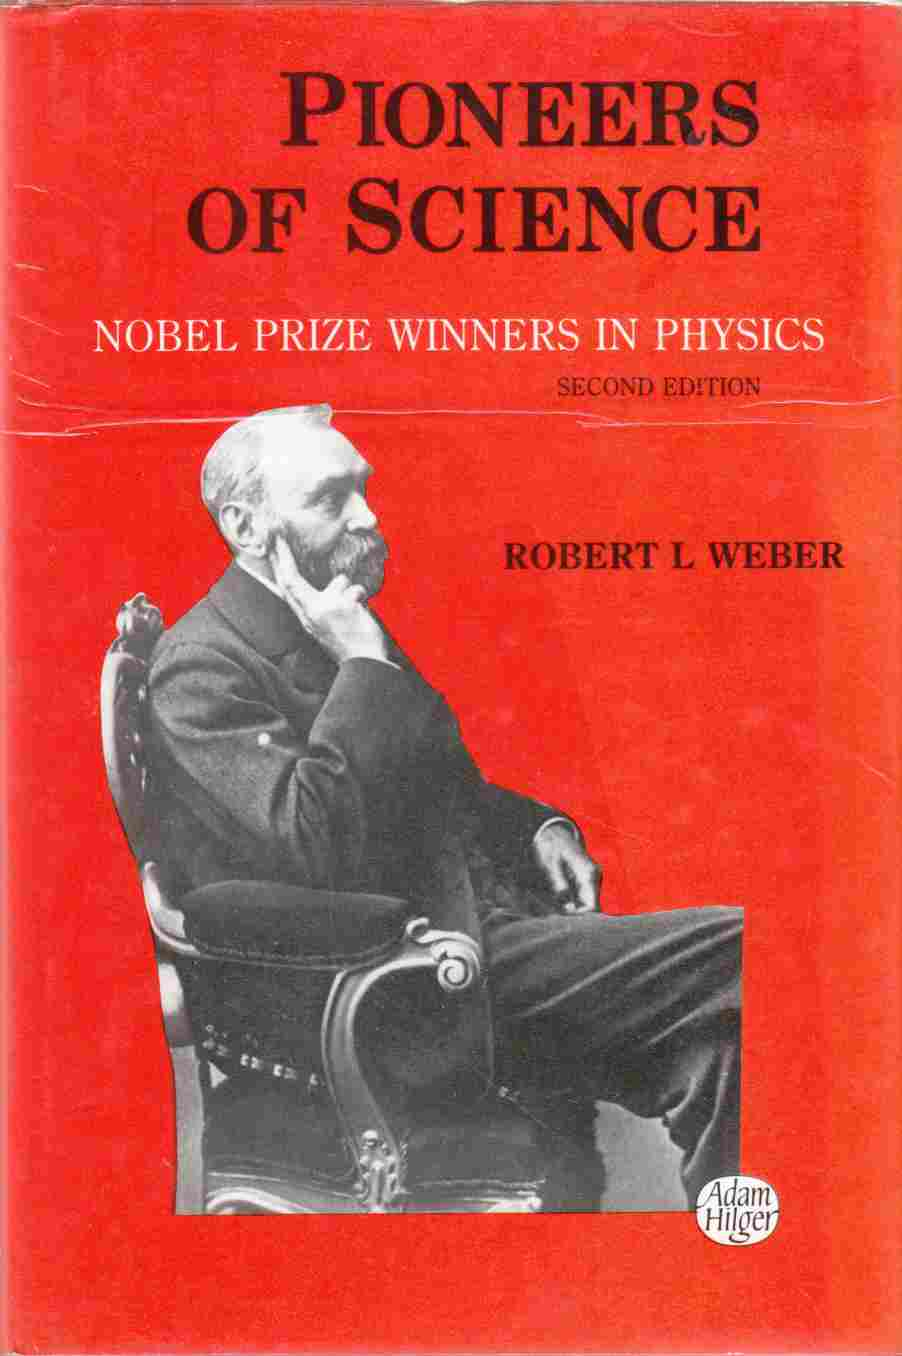 Image for Pioneers of Science Nobel Prize Winners in Physics Second Edition